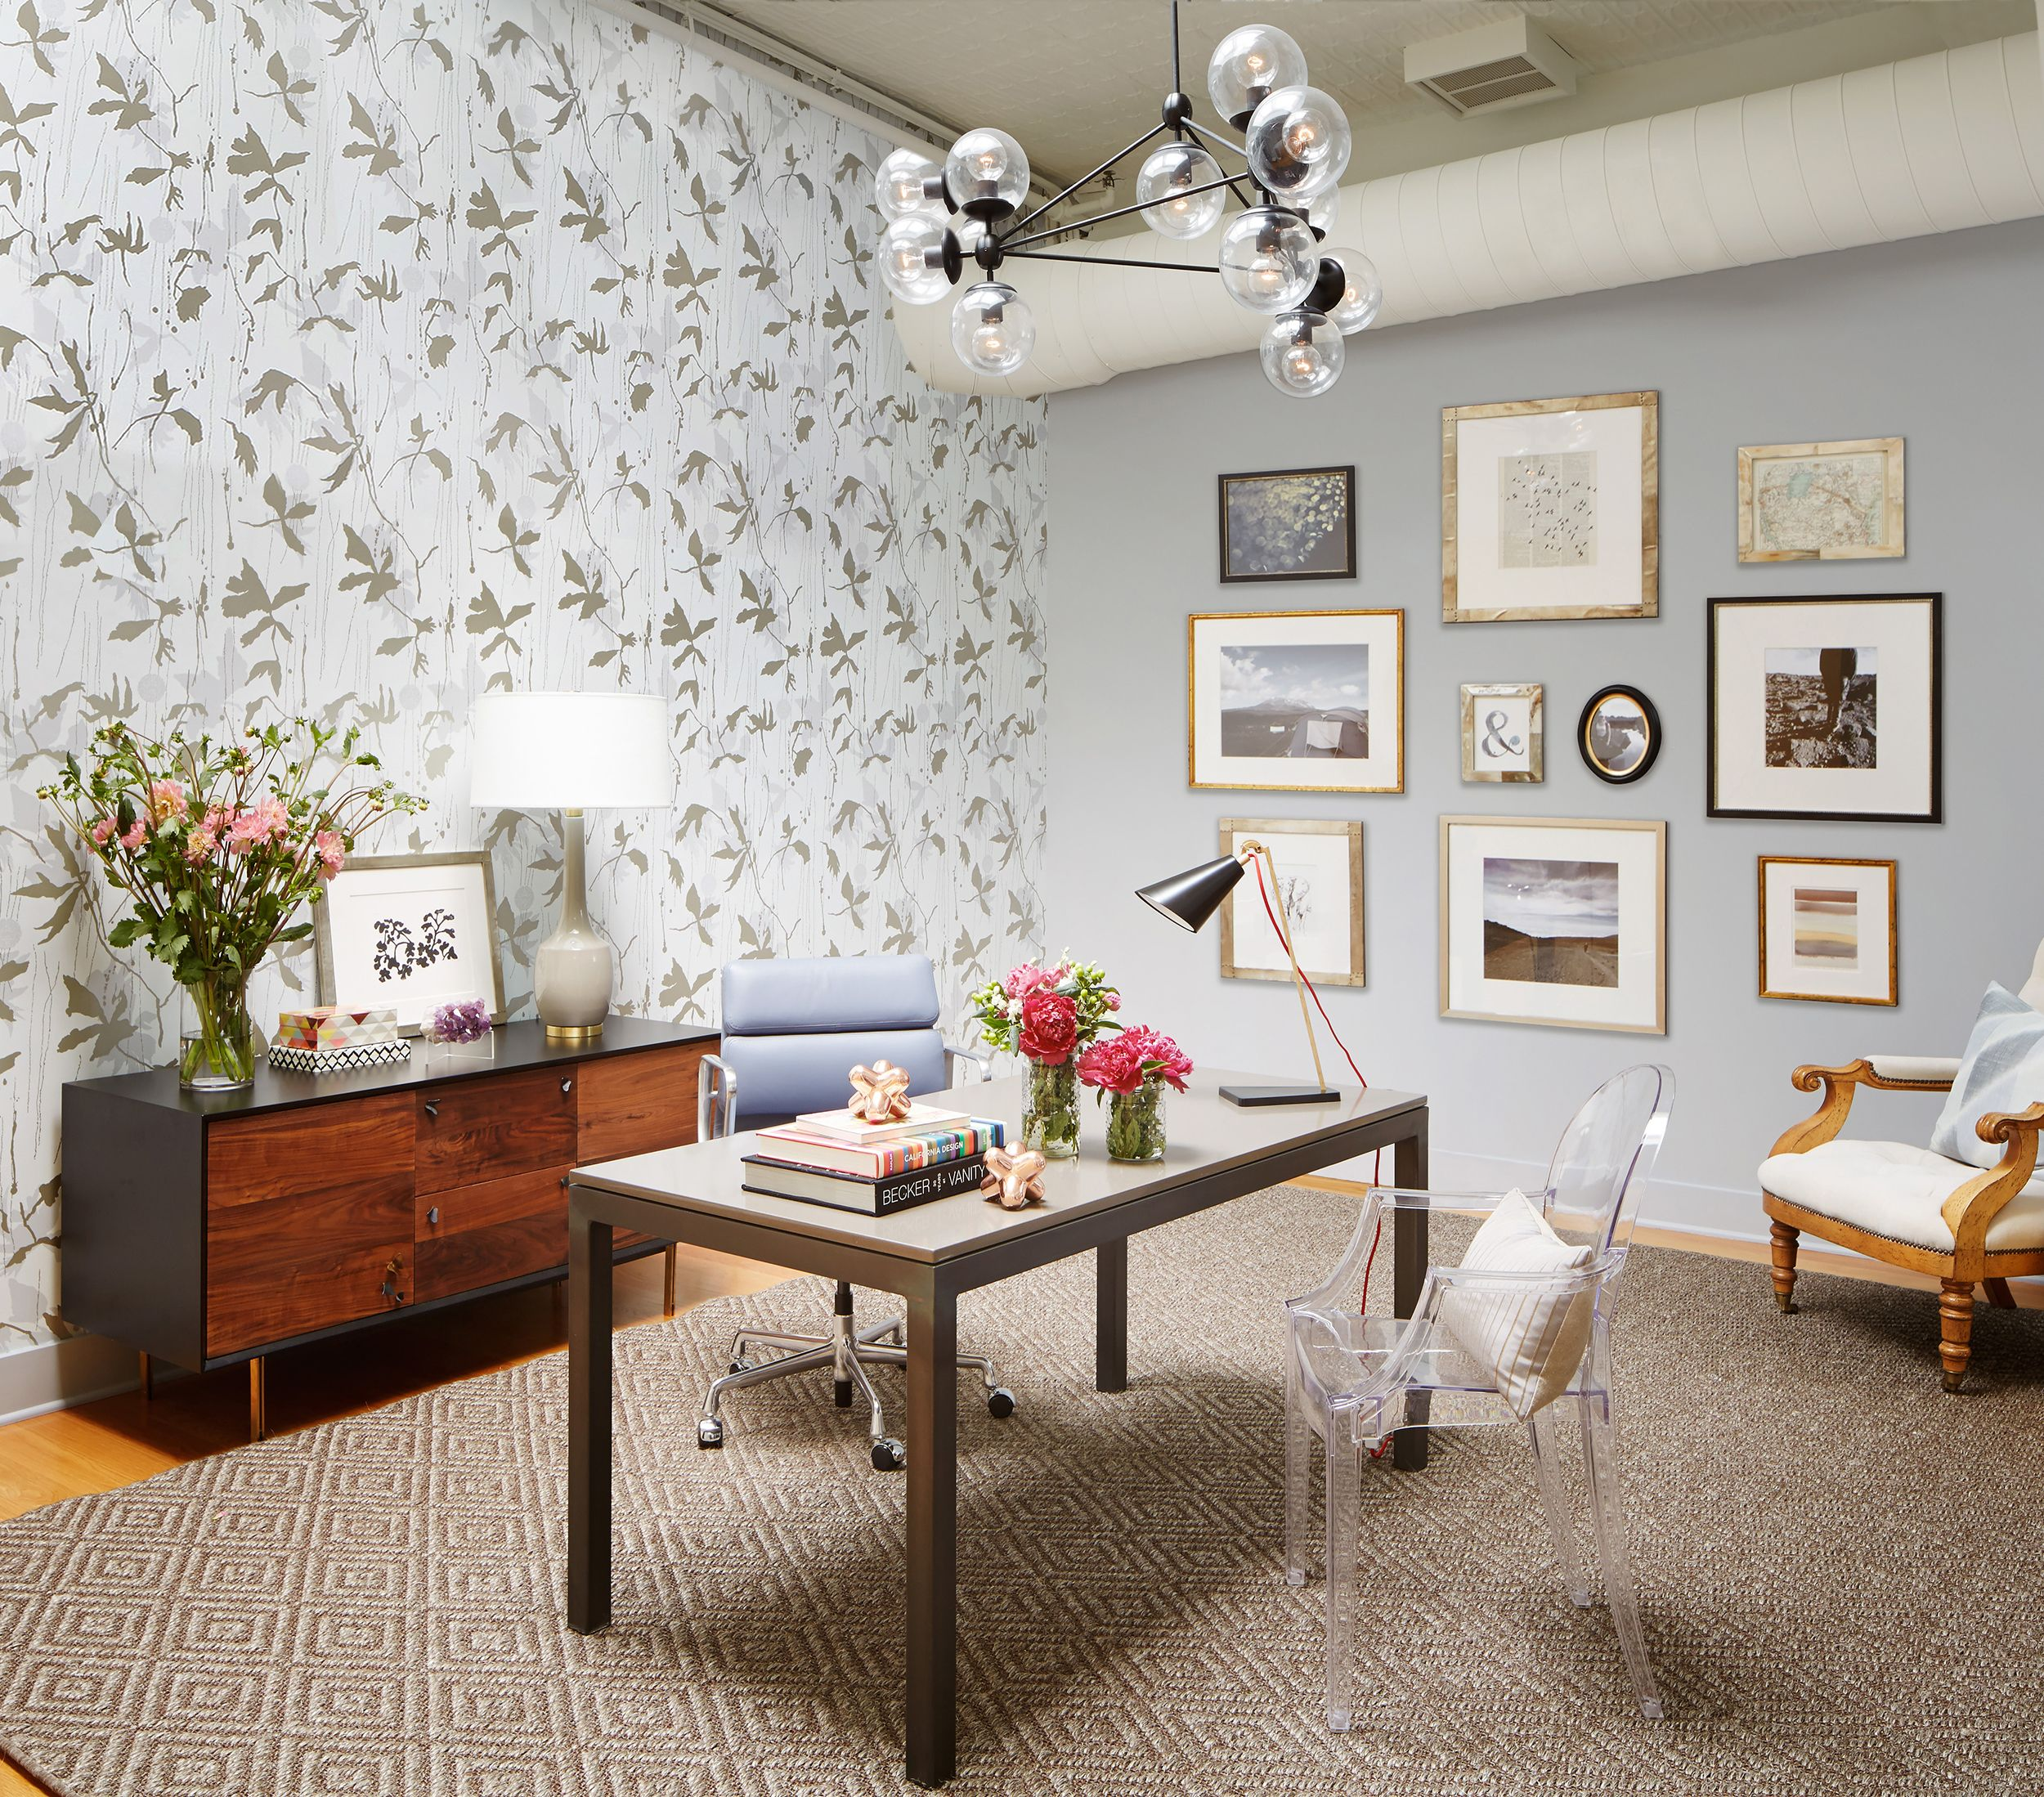 22 Stylish Accent Wall Ideas How To Use Paint Wallpaper